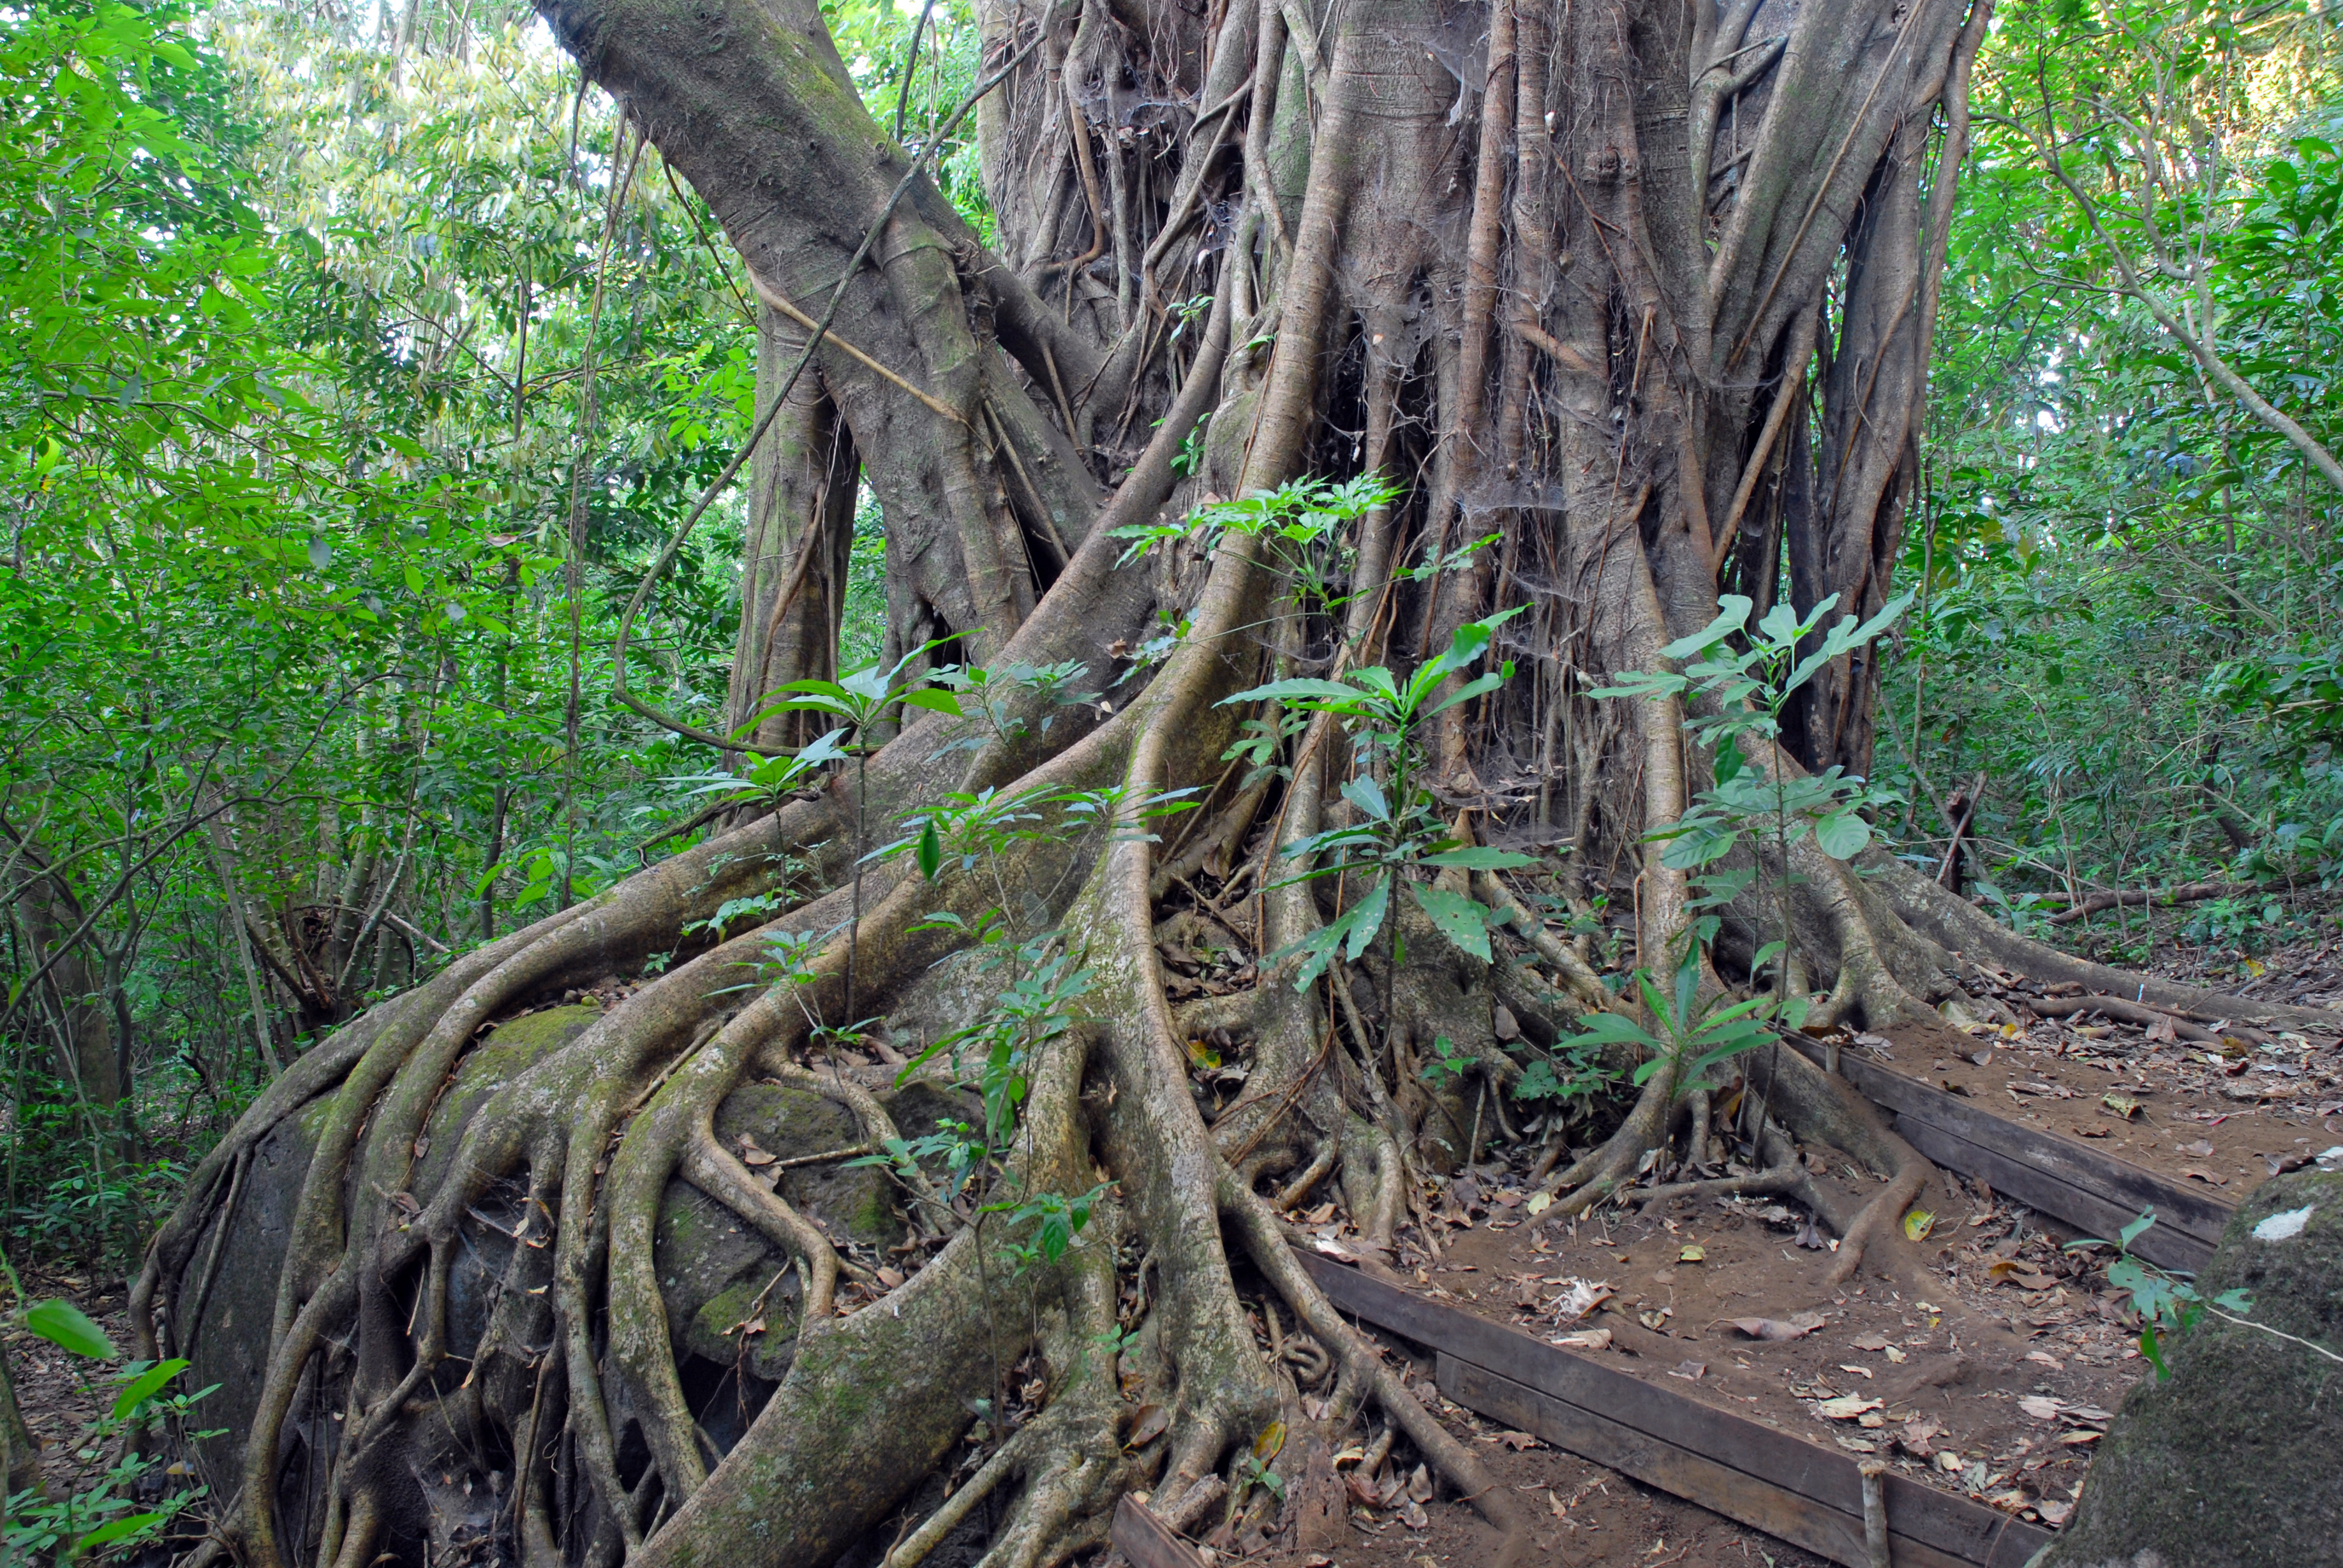 Image source plantsam com - Ficus Tree Roots In Rainforest The Jungle Costa Rica A Source For Many Medicinal Plants Used In Medicine And Drug Development